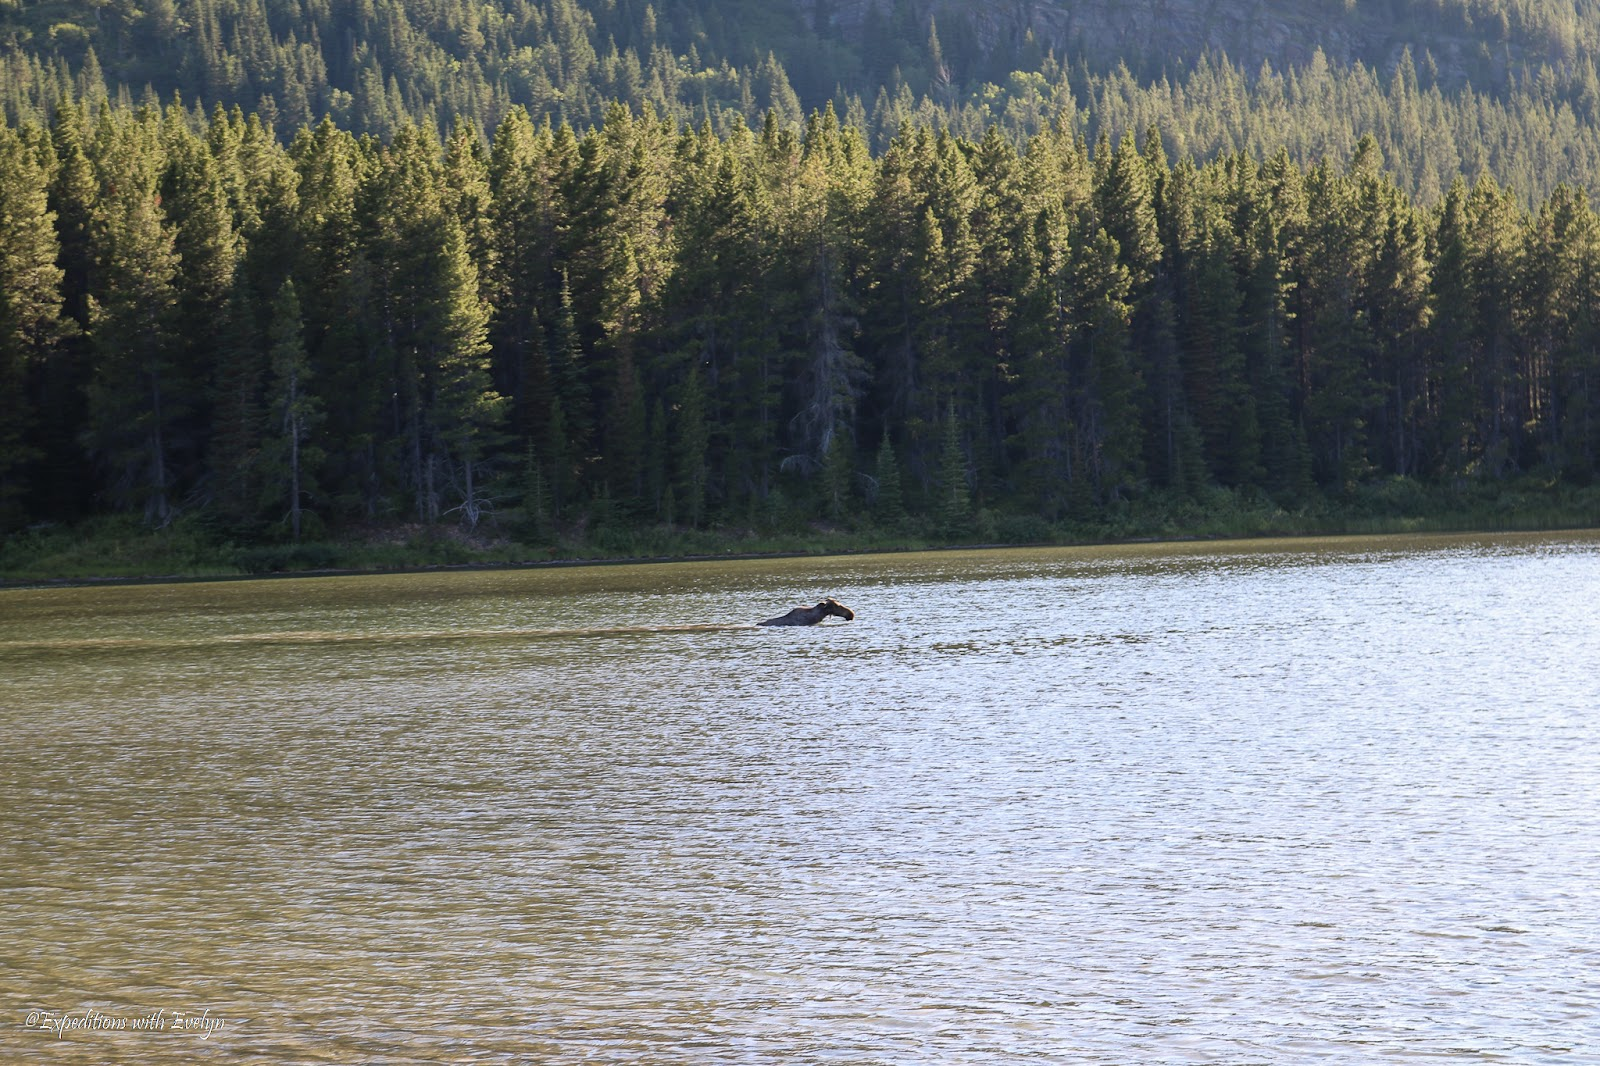 A moose swims in a green lake with pine trees in the background.